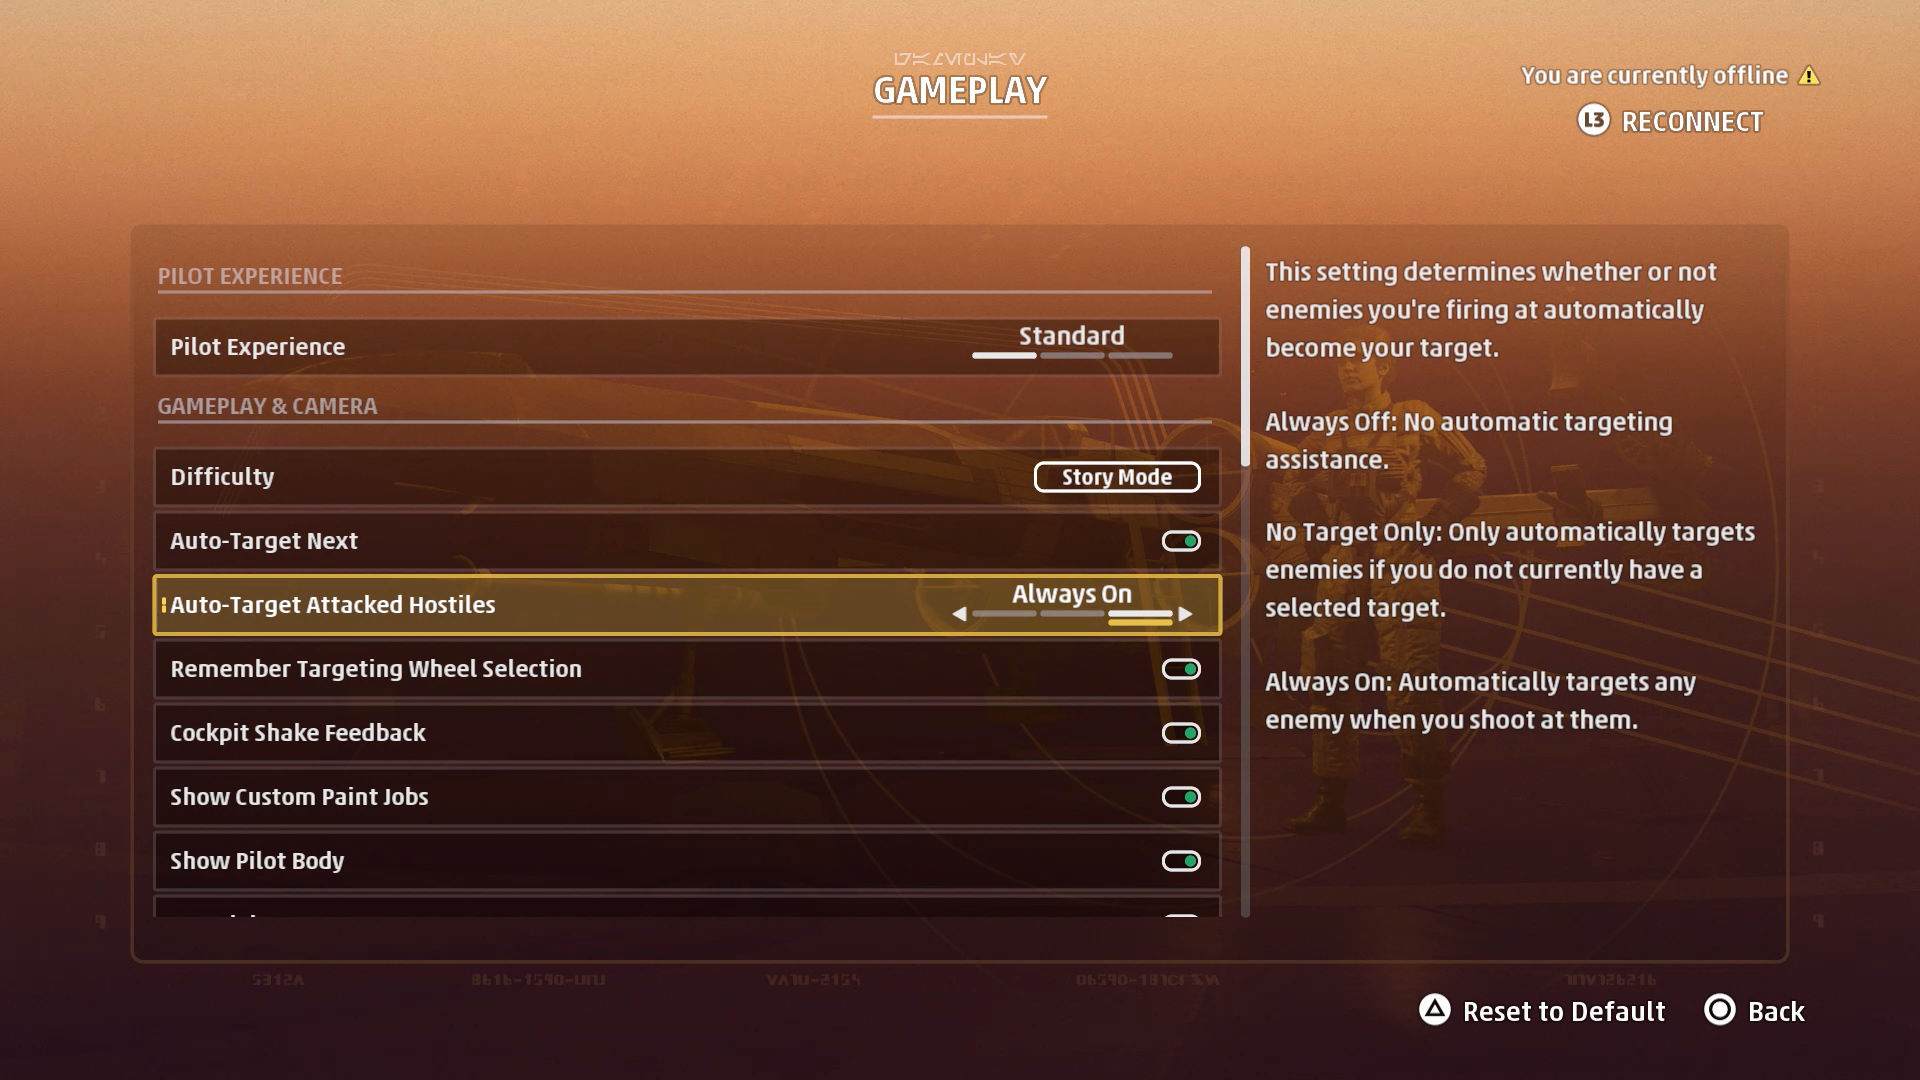 A screenshot showing the Auto-Target Attacked Hostiles option.